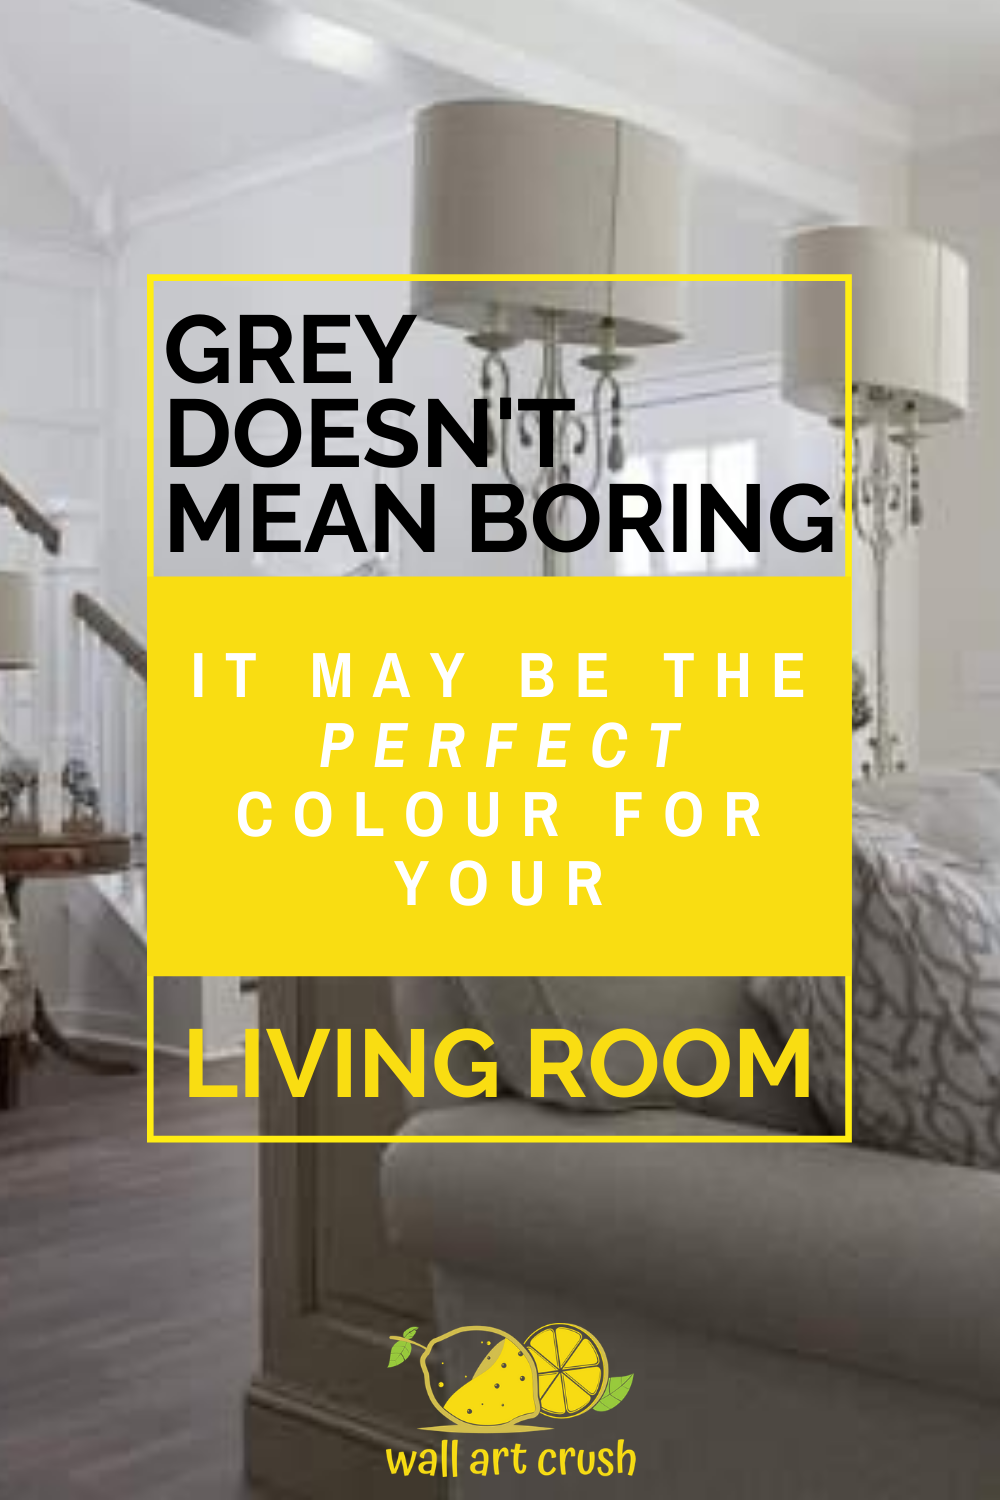 Think grey is a boring living room decor? Think again! Grey is a wonderful & versatile idea that suits any colour scheme & palette. It's ideal for a living room, whether you use it on the walls or as a decor accent, grey will mix & match with any decorating style. #greylivingroom #livingroomdecor #greydecor #greylivingroomideas